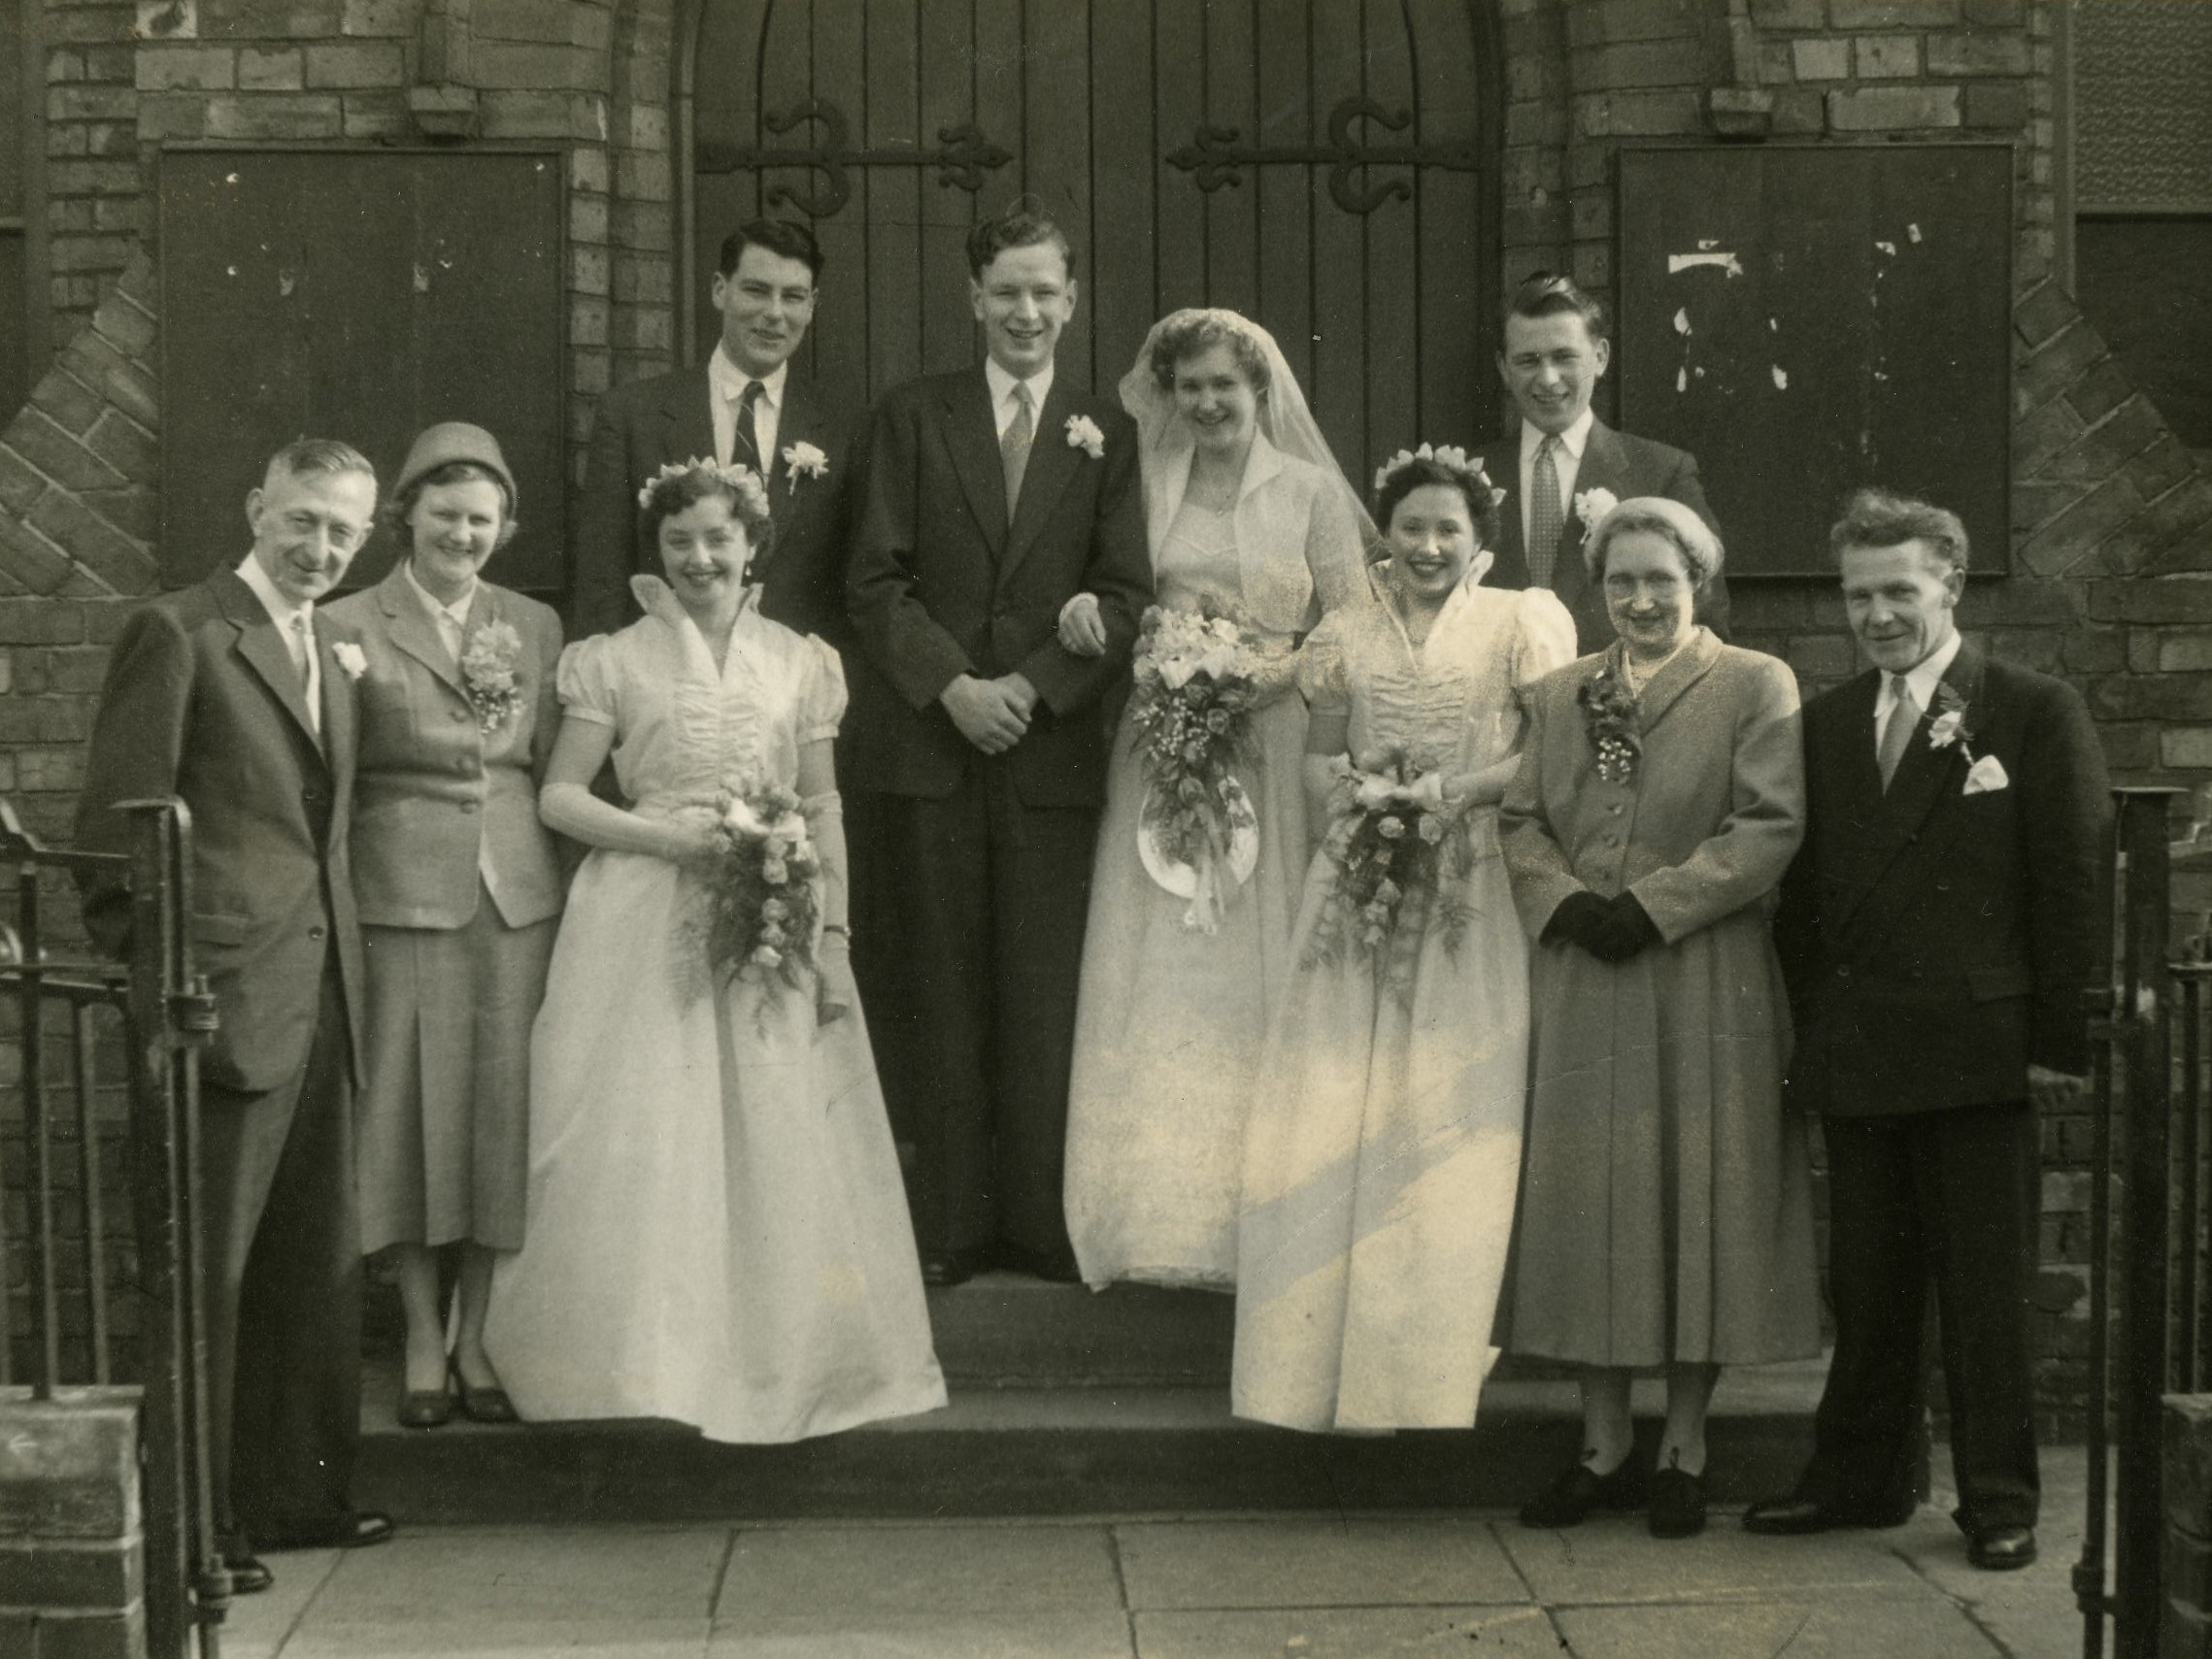 Edwin Ward & Isobel (Ishie) Shaw's Wedding